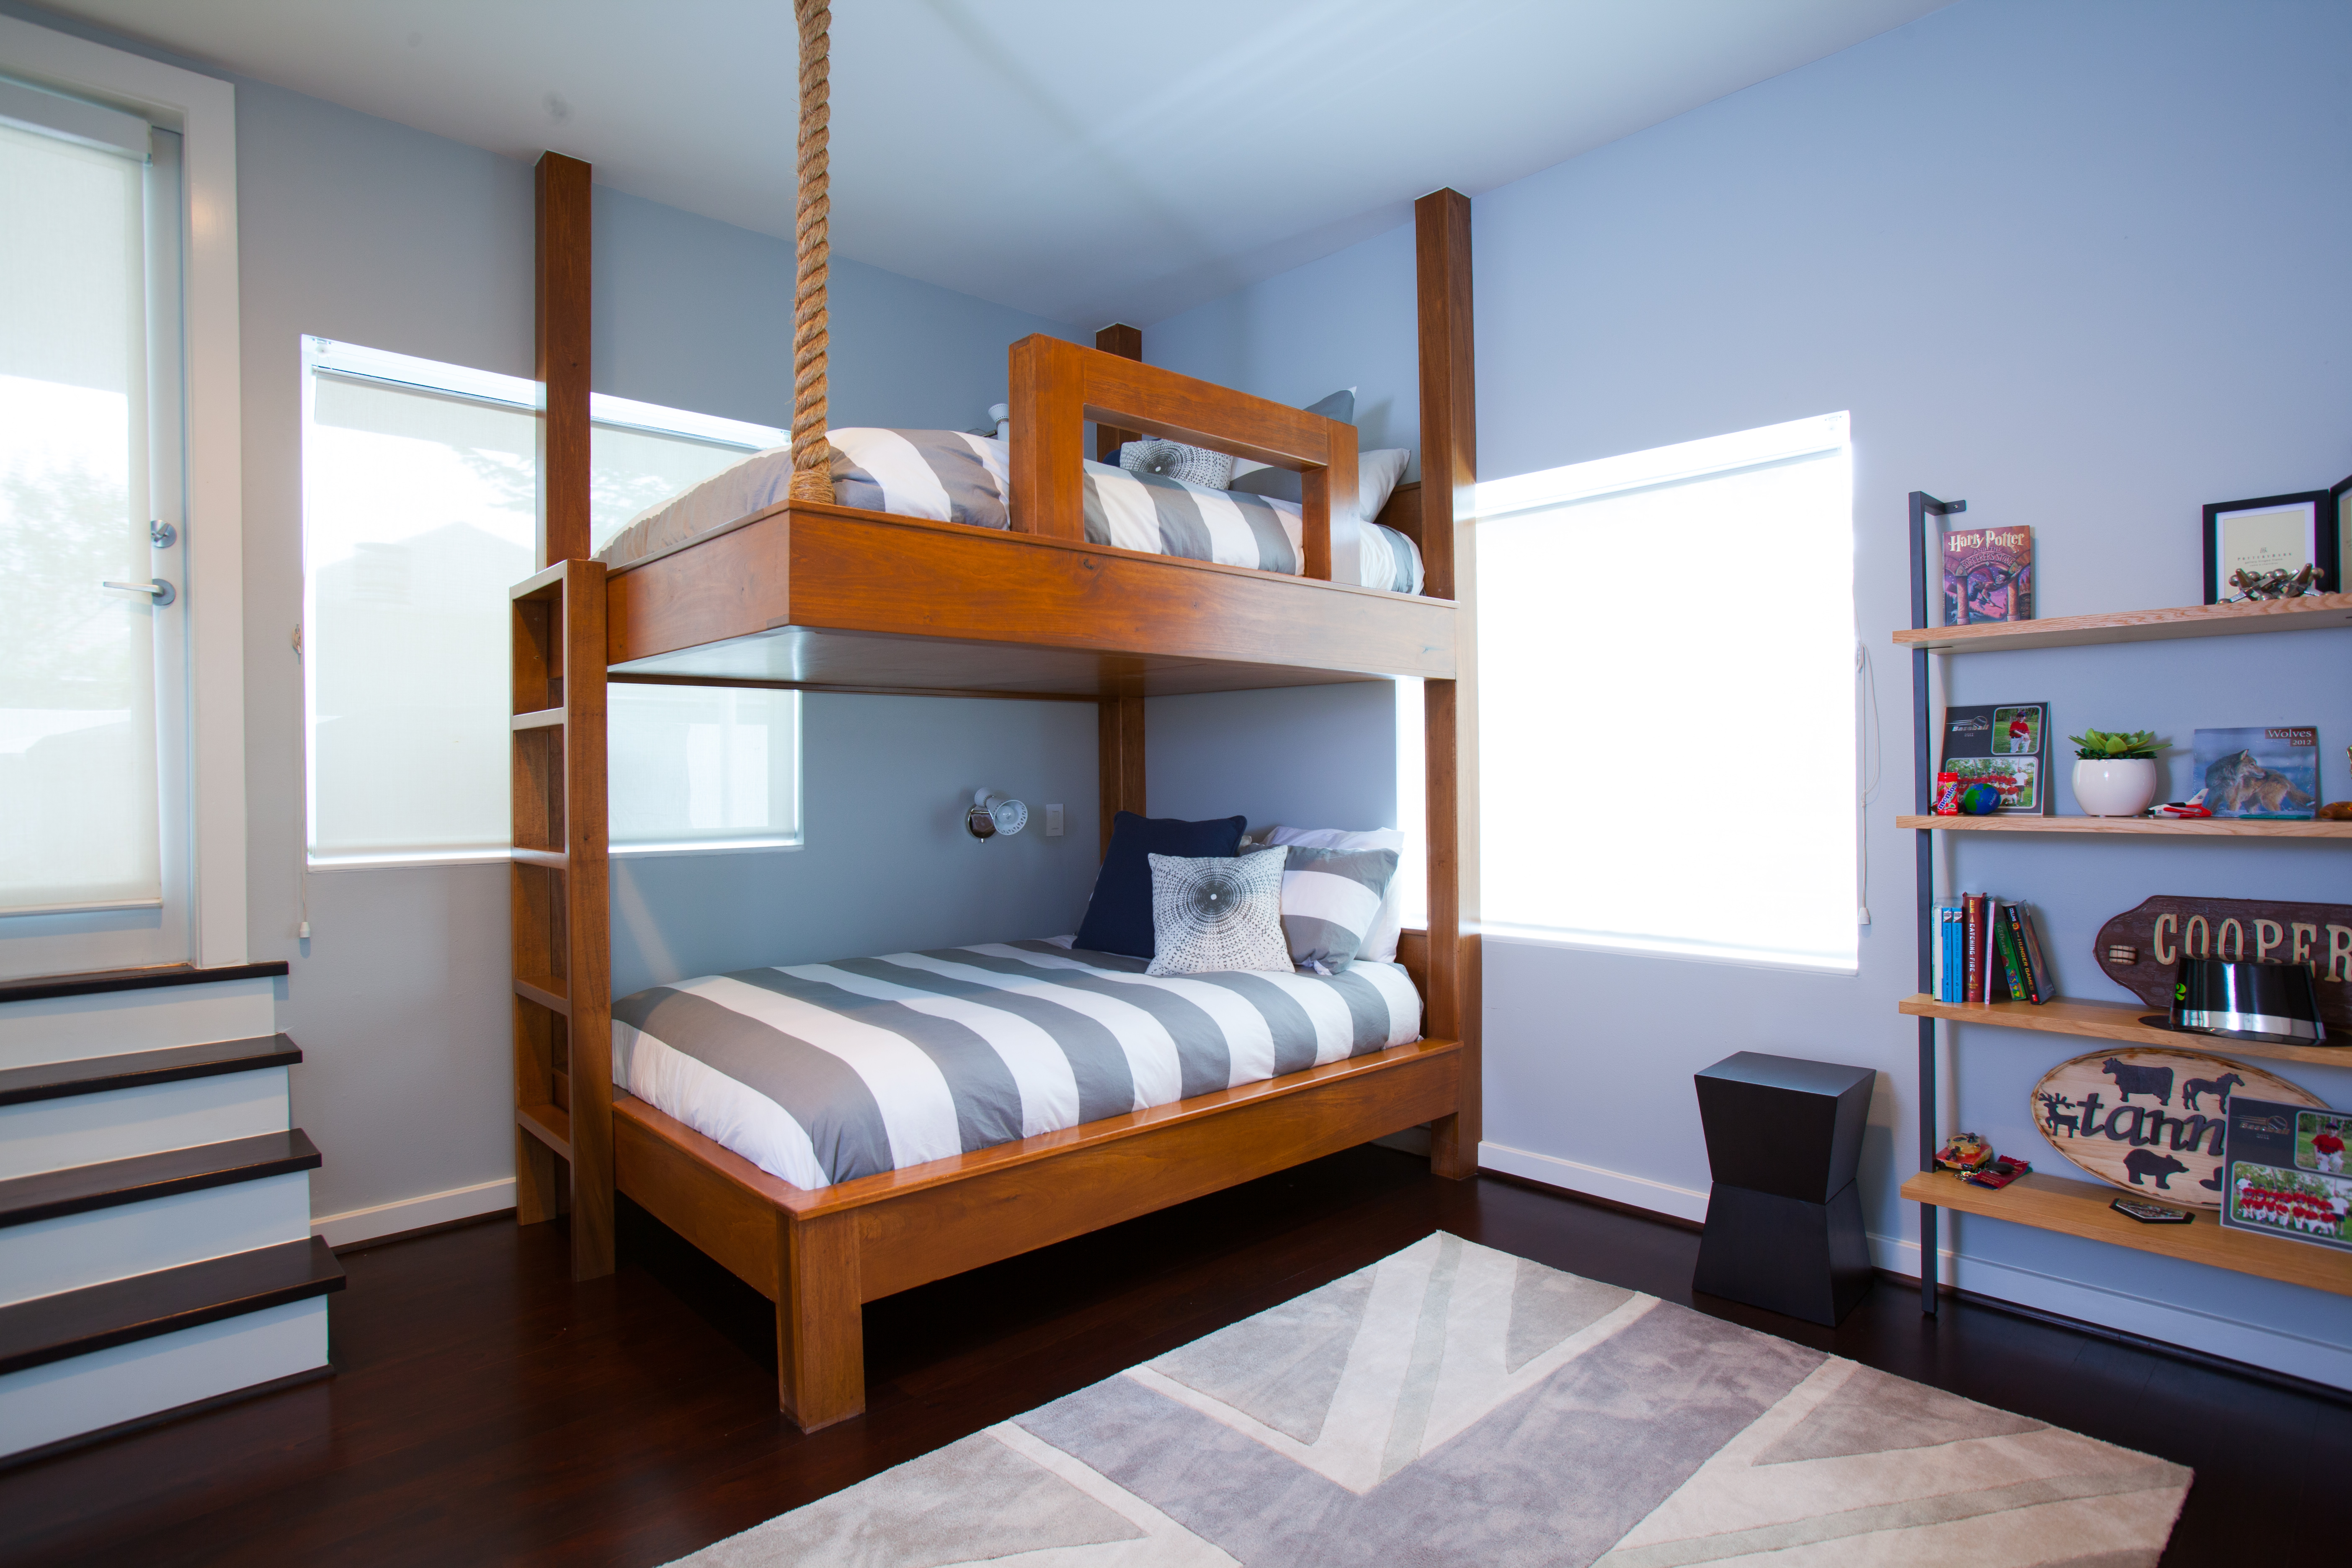 Nautical striped blue wooden bunk beds in modern kids room - Laura U Interior Design